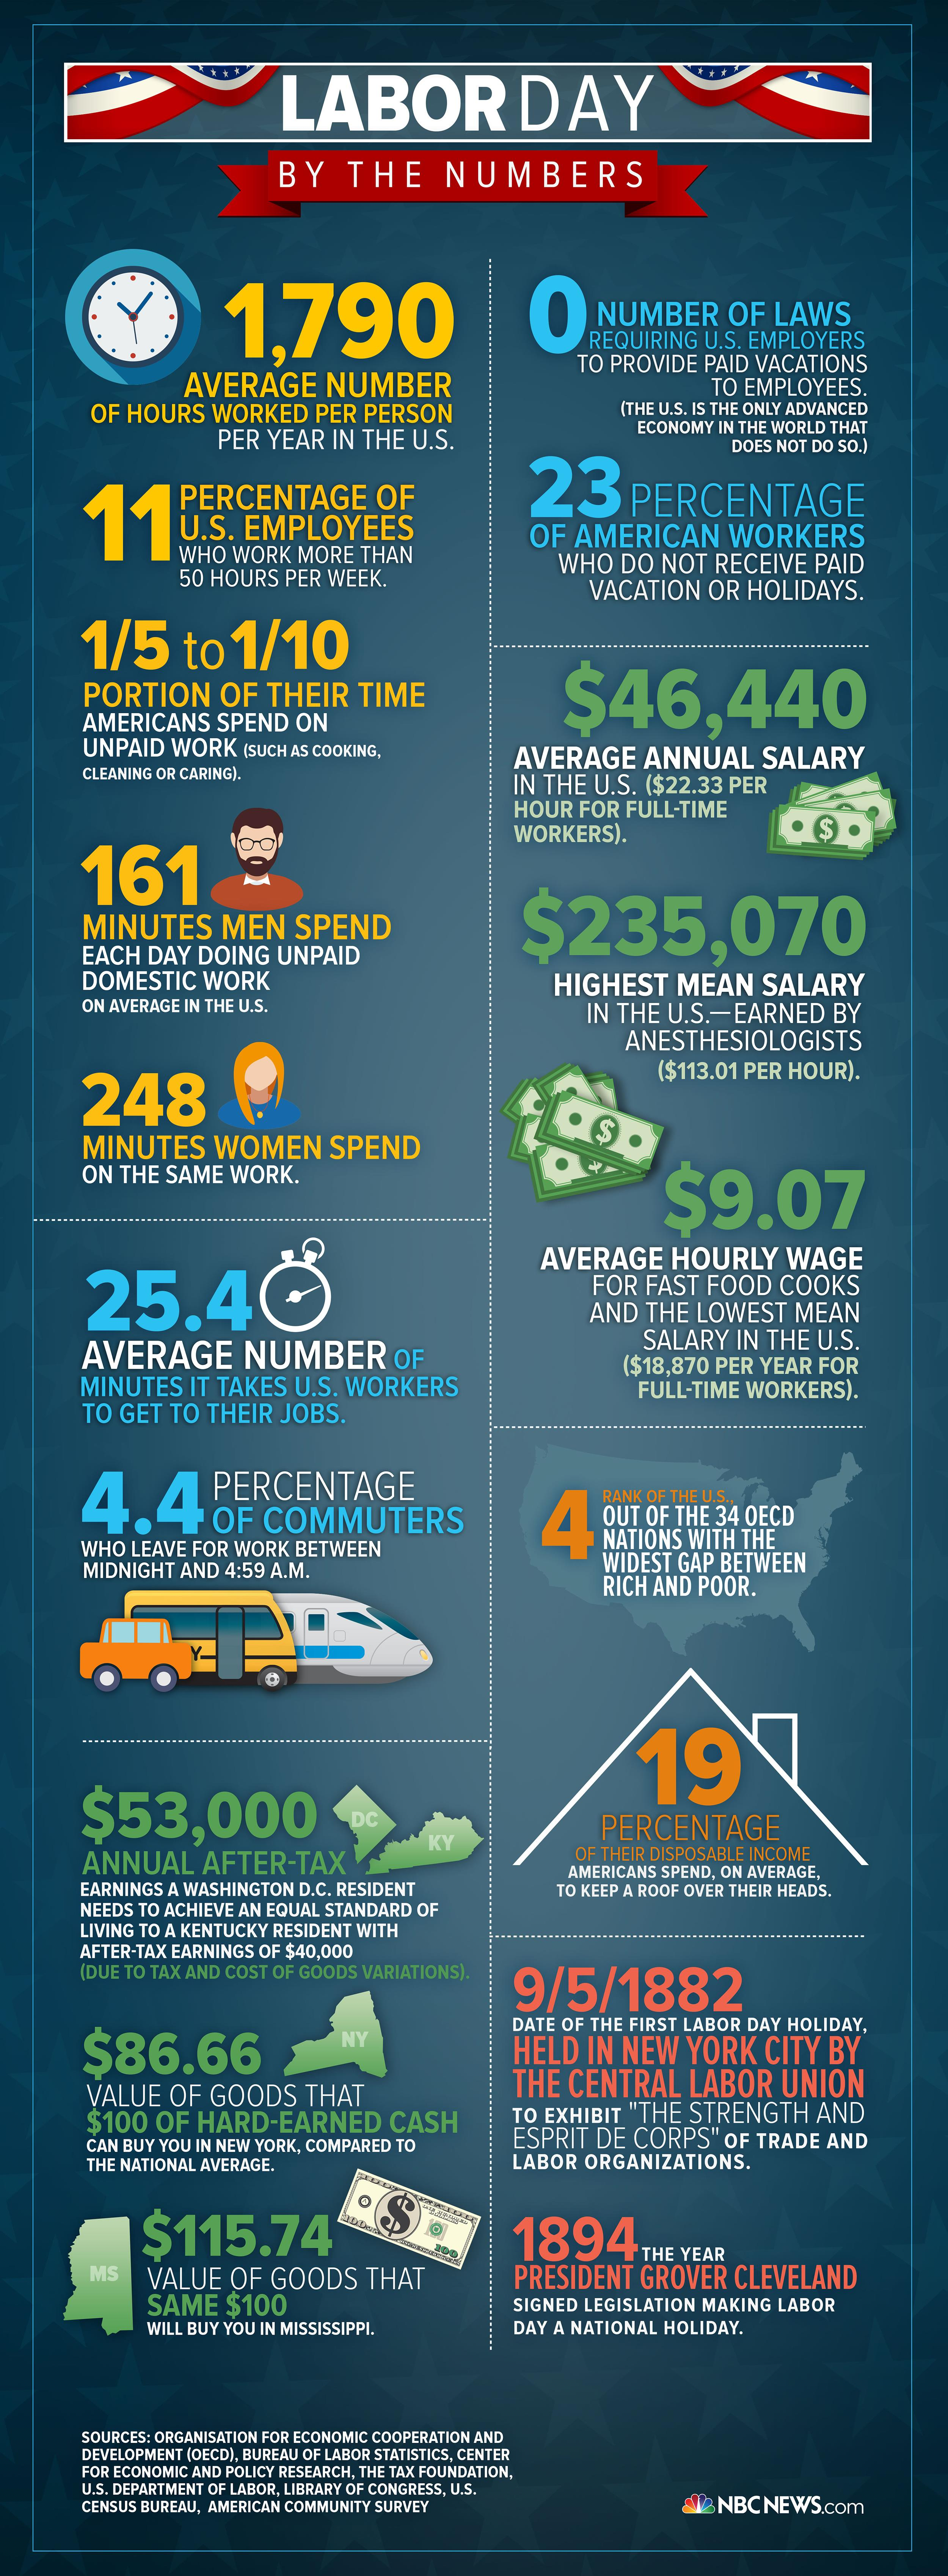 Labor Day By The Numbers